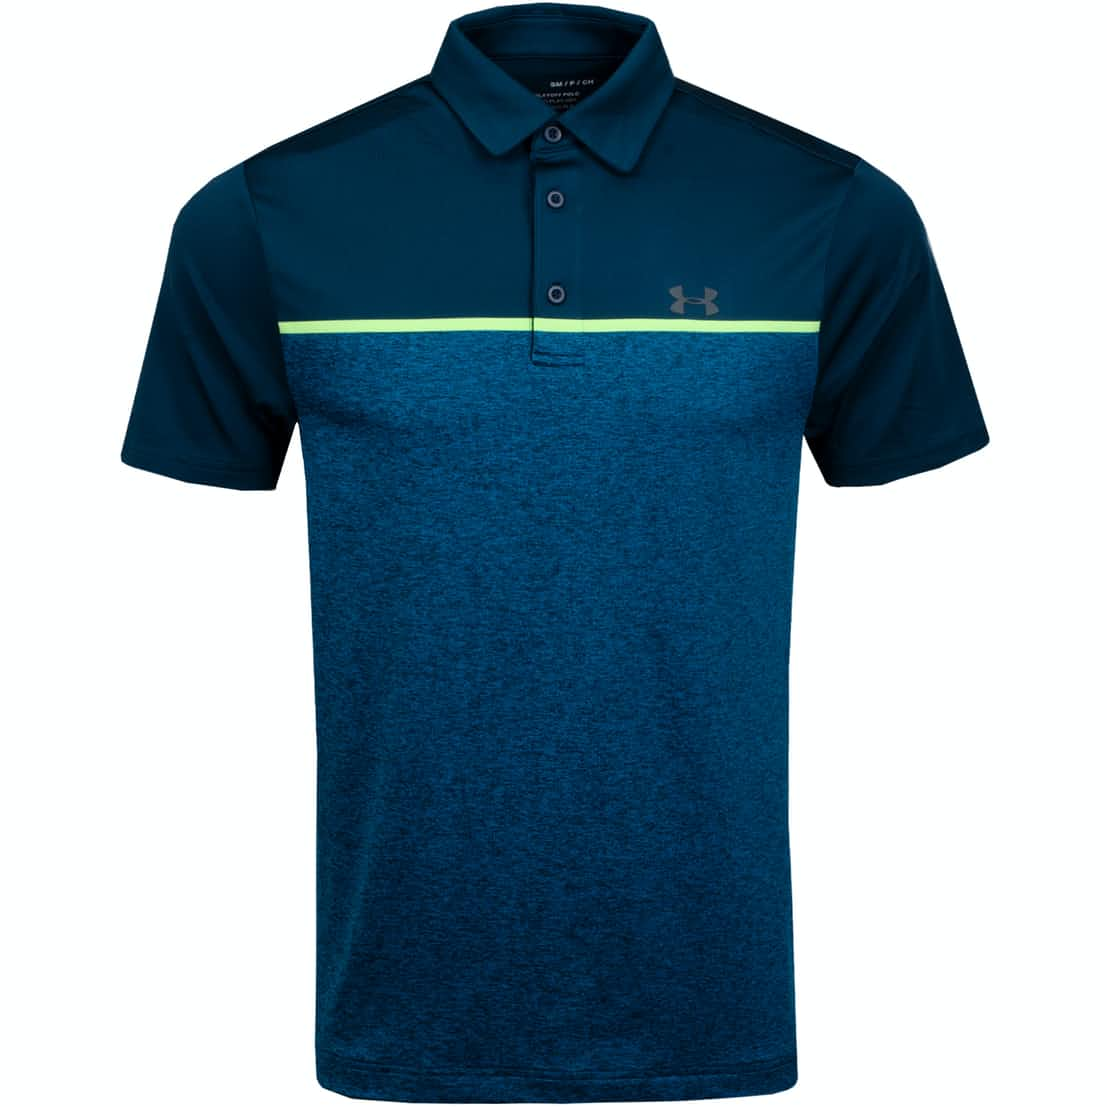 Playoff Polo 2.0 Tandem Teal/Pitch Grey - AW19